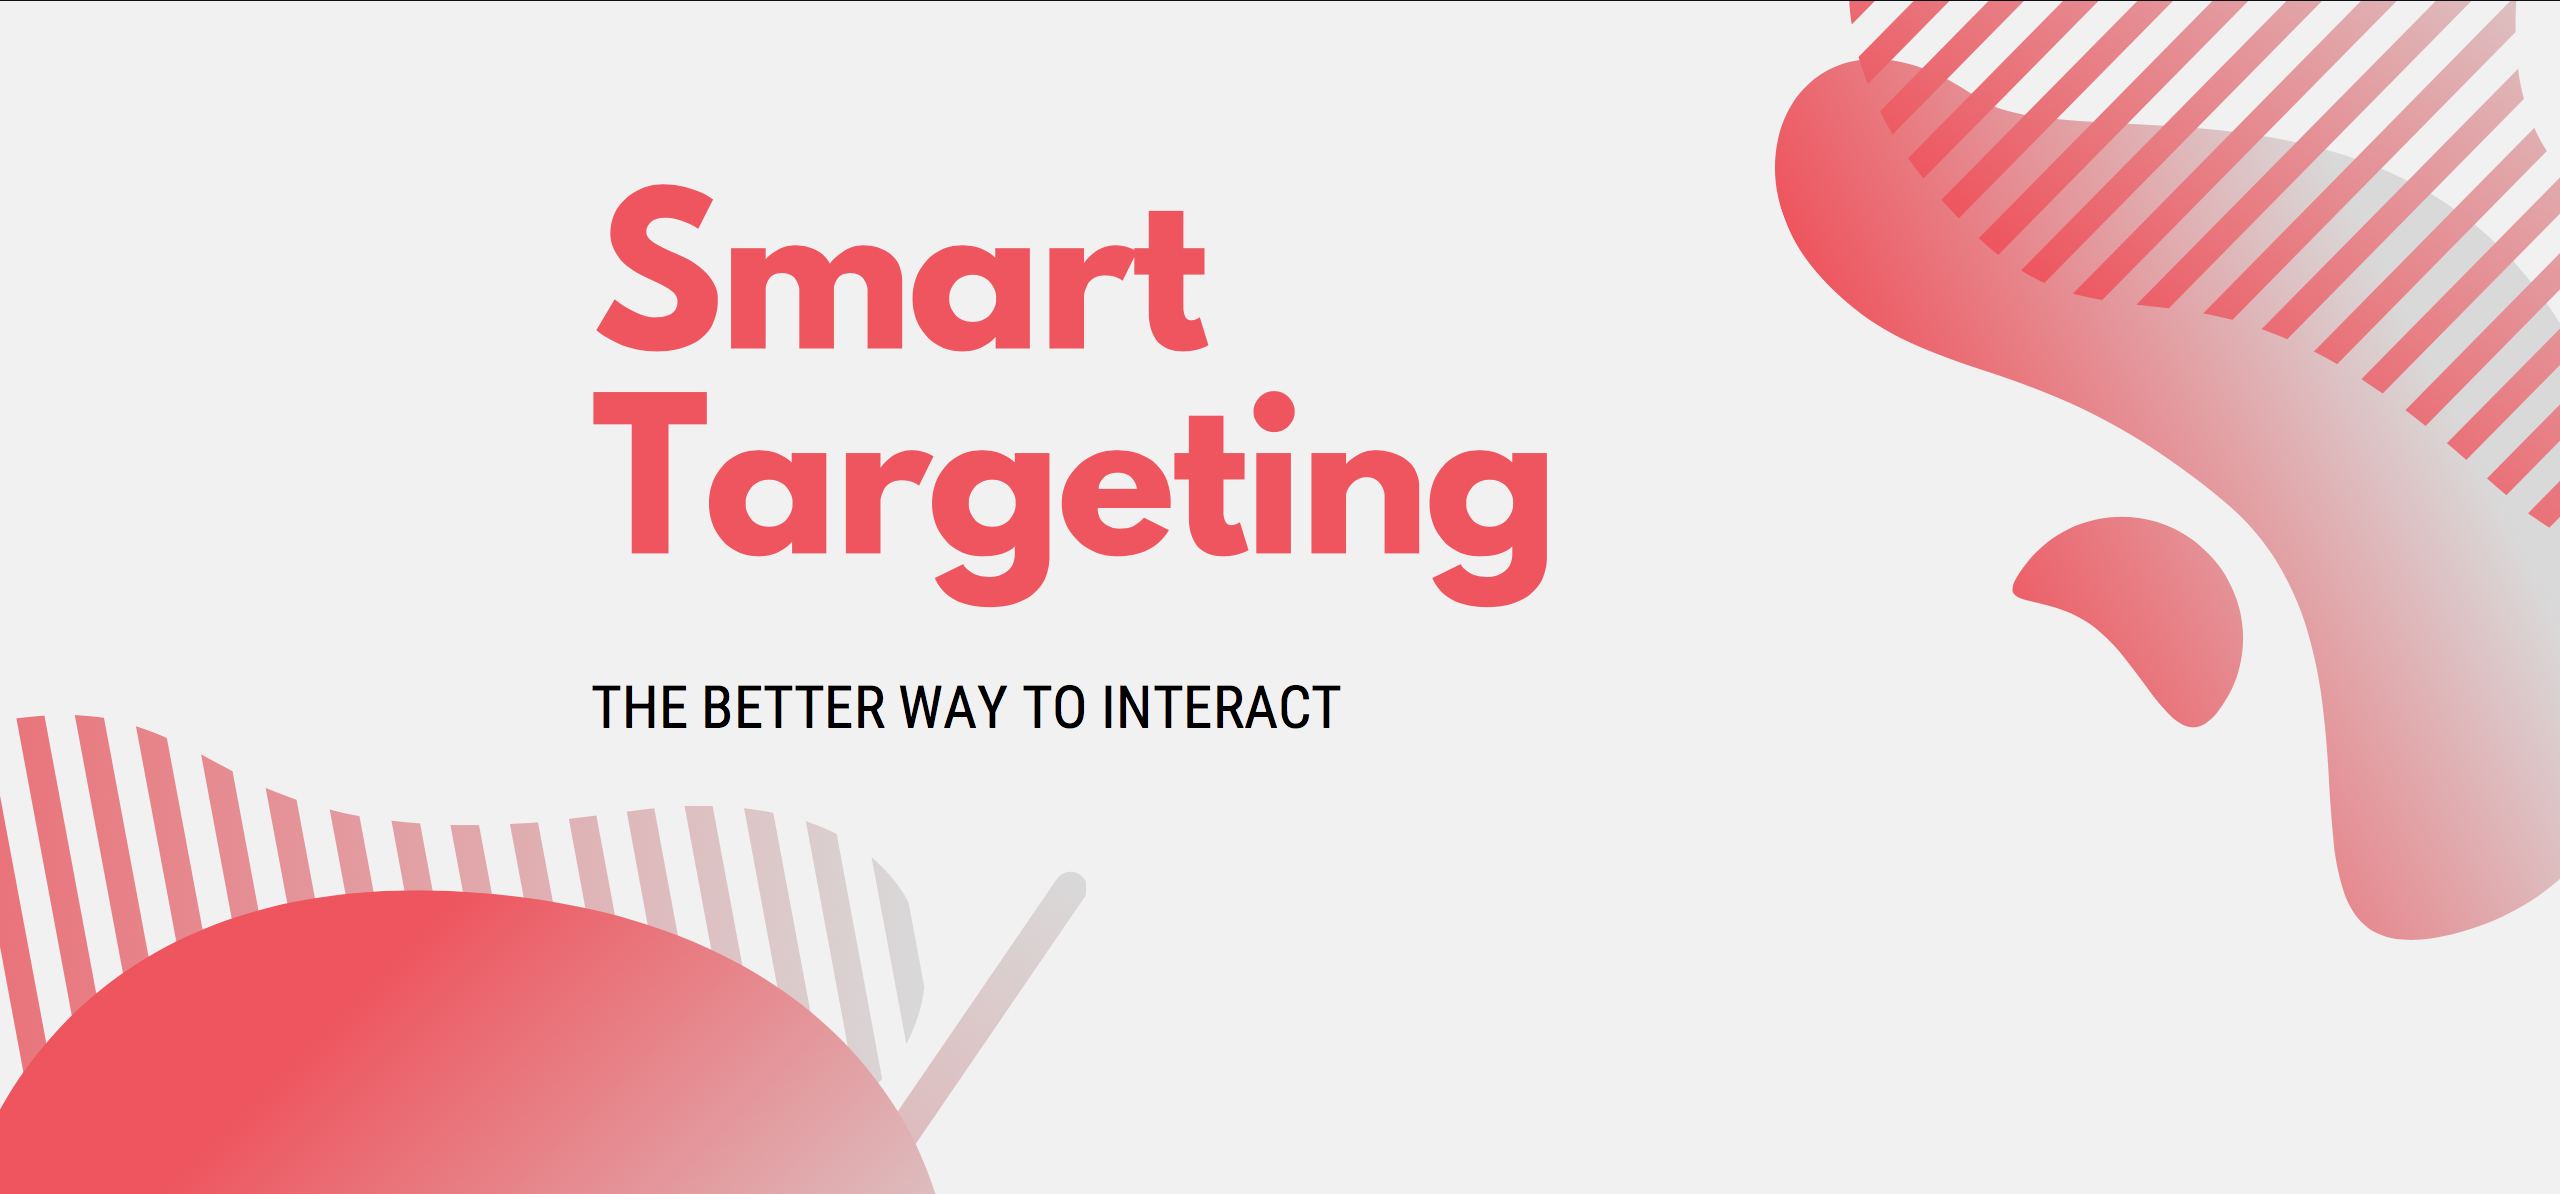 Smart-Targeting-The-Better-Way-To-Interact